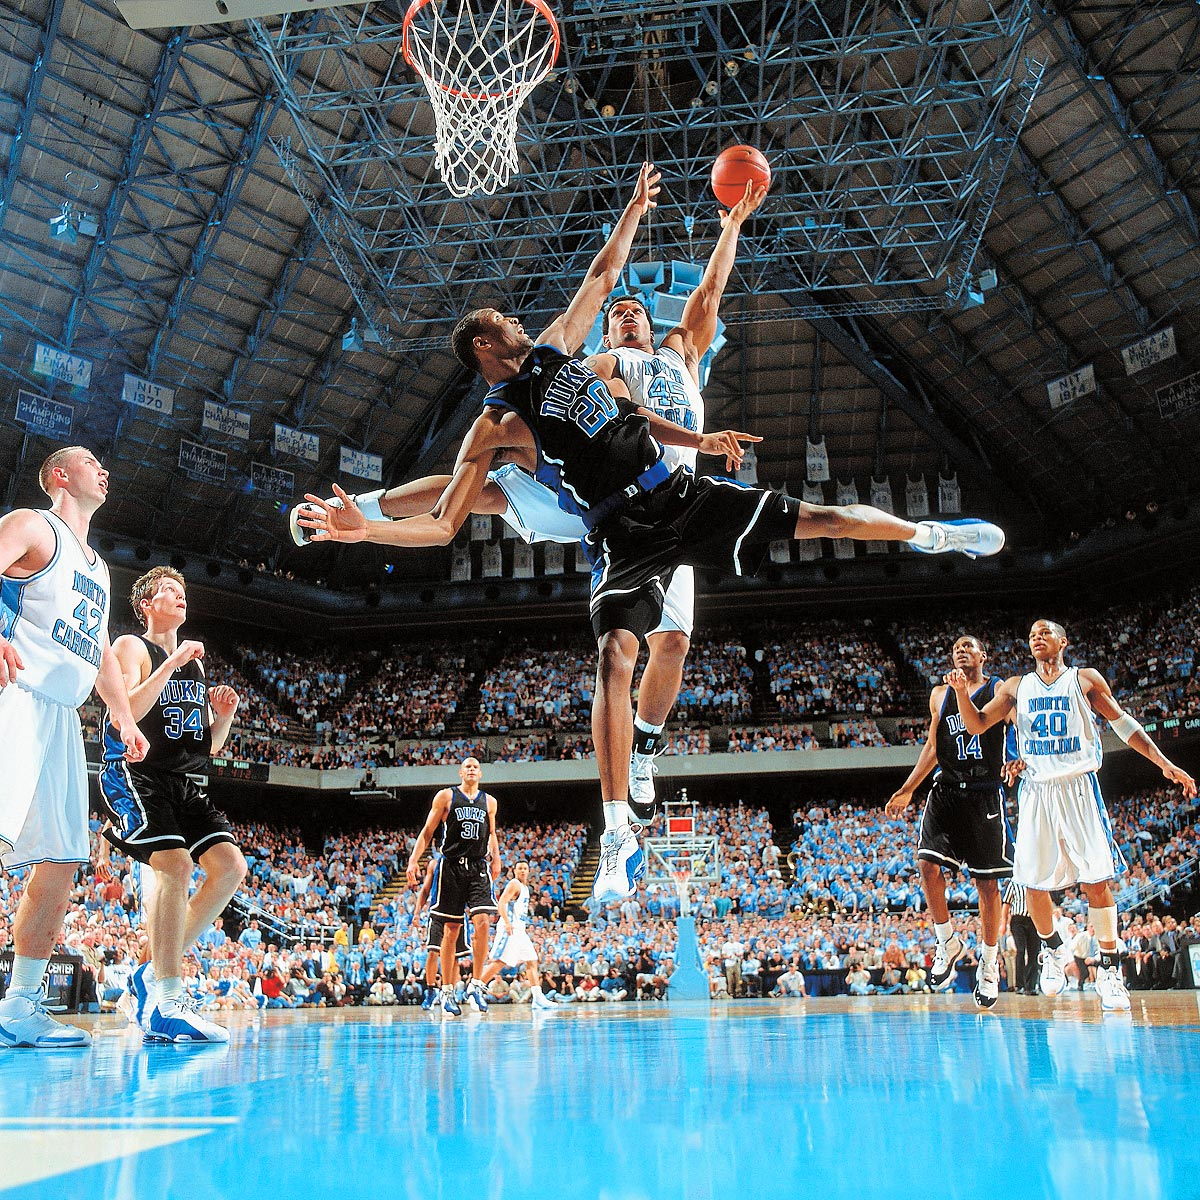 Chapel Hill, N.C., March 4, 2001 | Casey Sanders of Duke (20) tries to stop North Carolina's Julius Peppers at the Dean E. Smith Center. No. 2 Duke defeated No. 4 North Carolina 95-81.